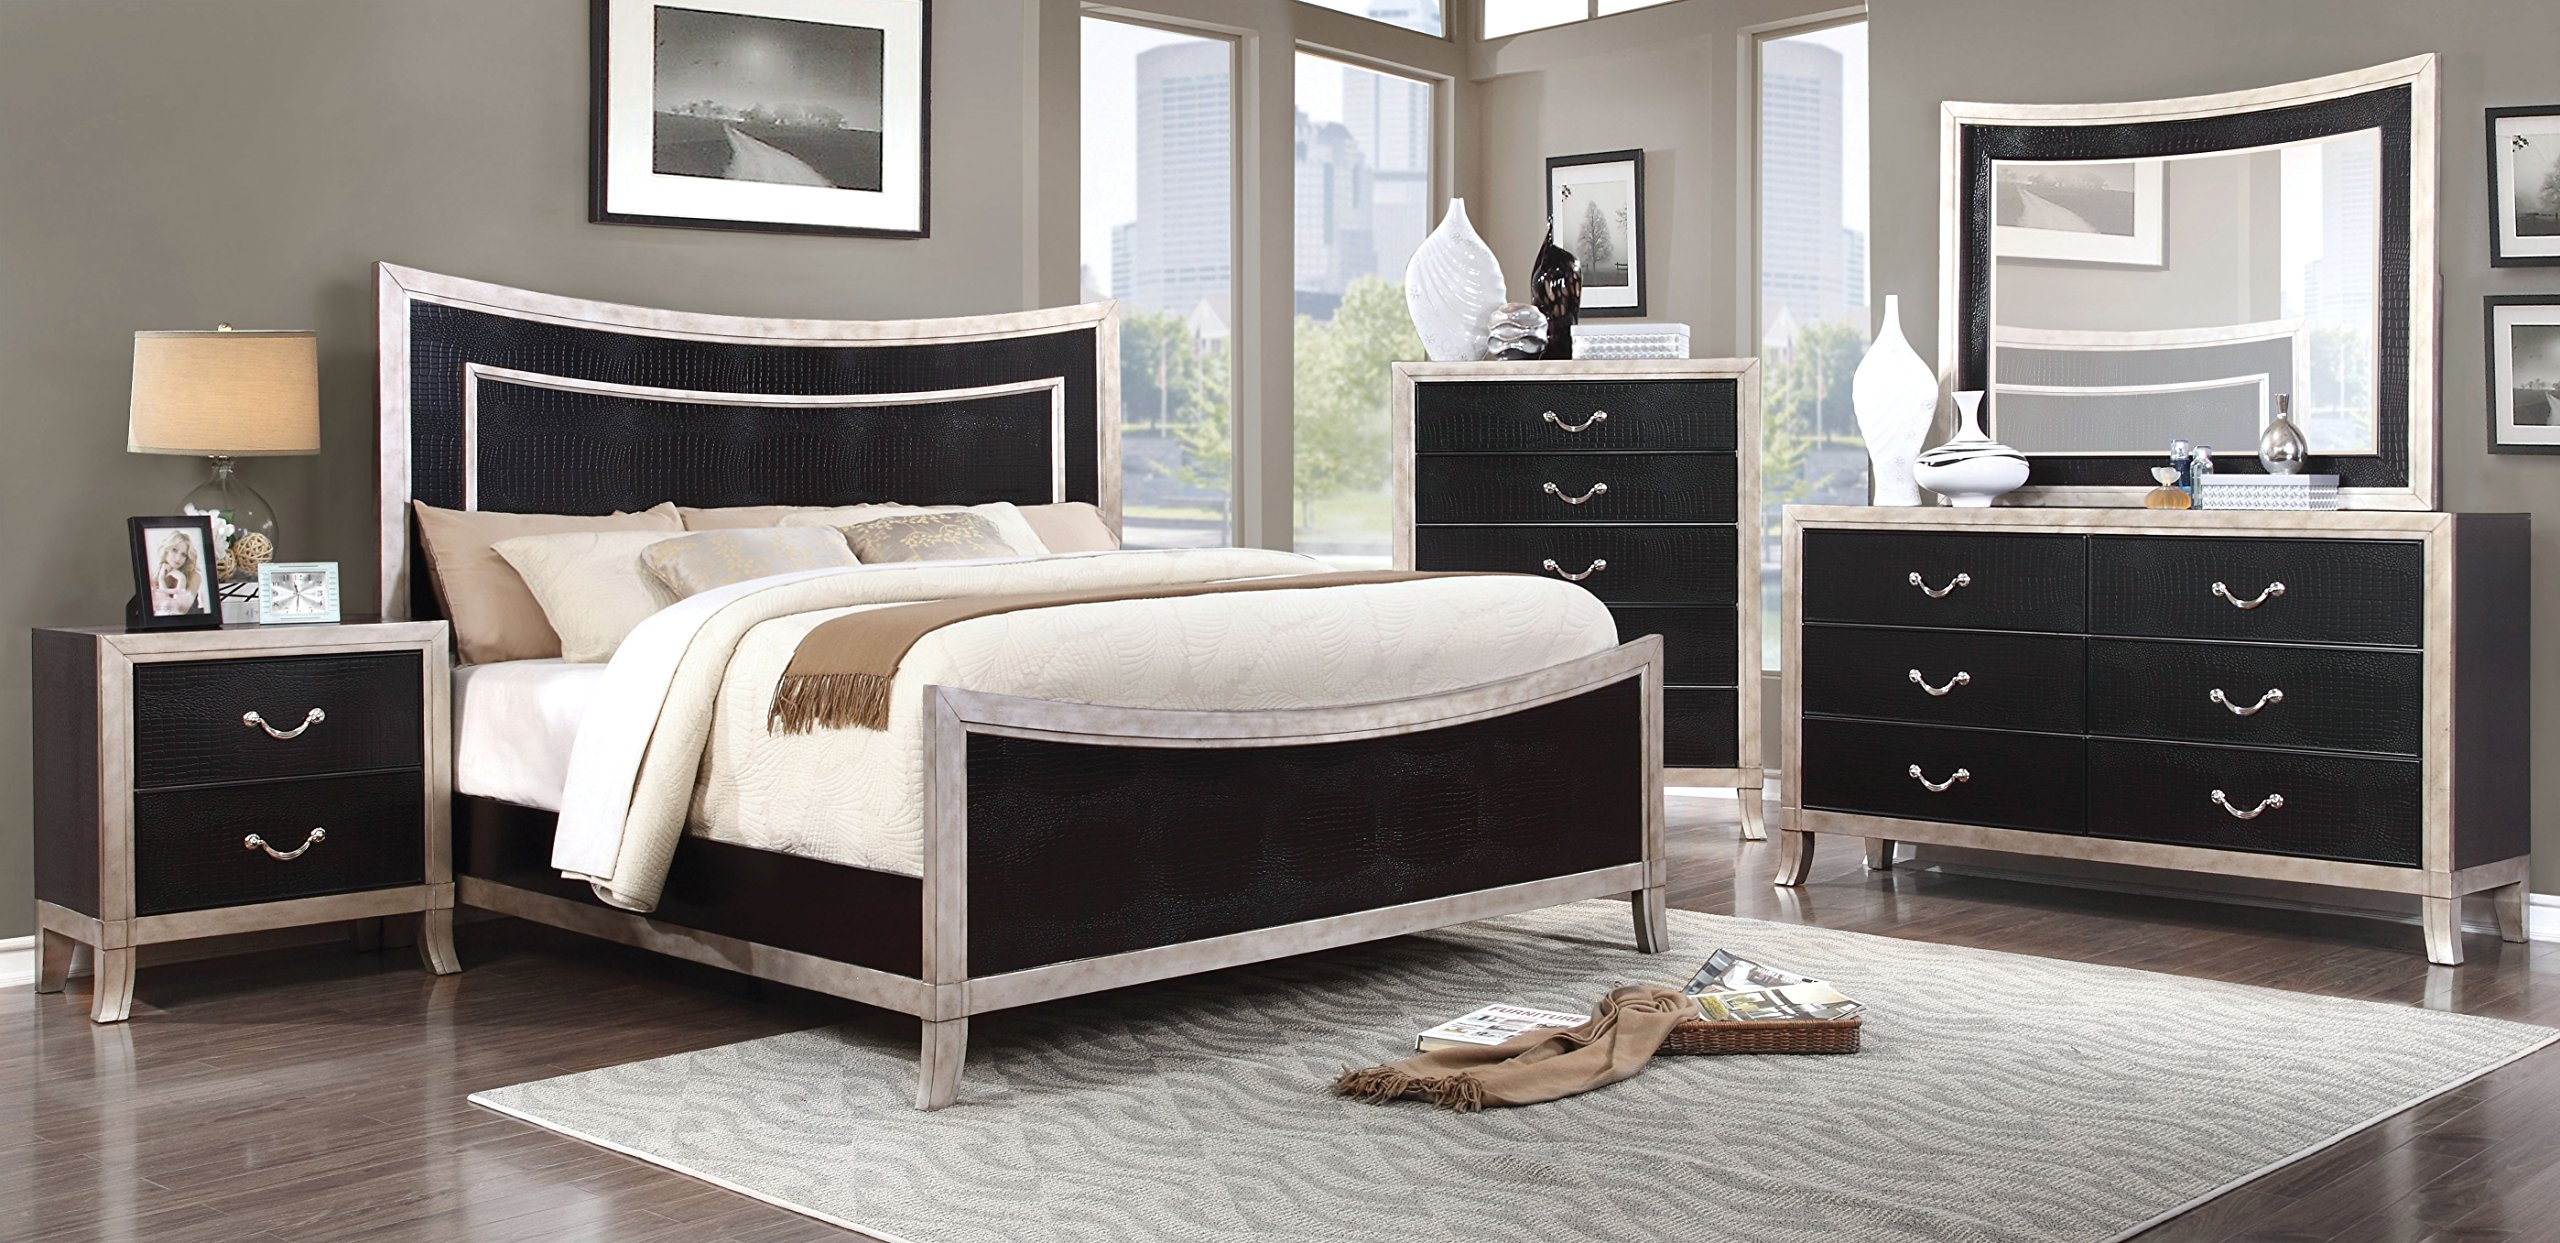 HOMES: Inside + Out ioHOMES Crocodile Textured Panel 5-Drawer Chest, Black/Silver by HOMES: Inside + Out (Image #3)